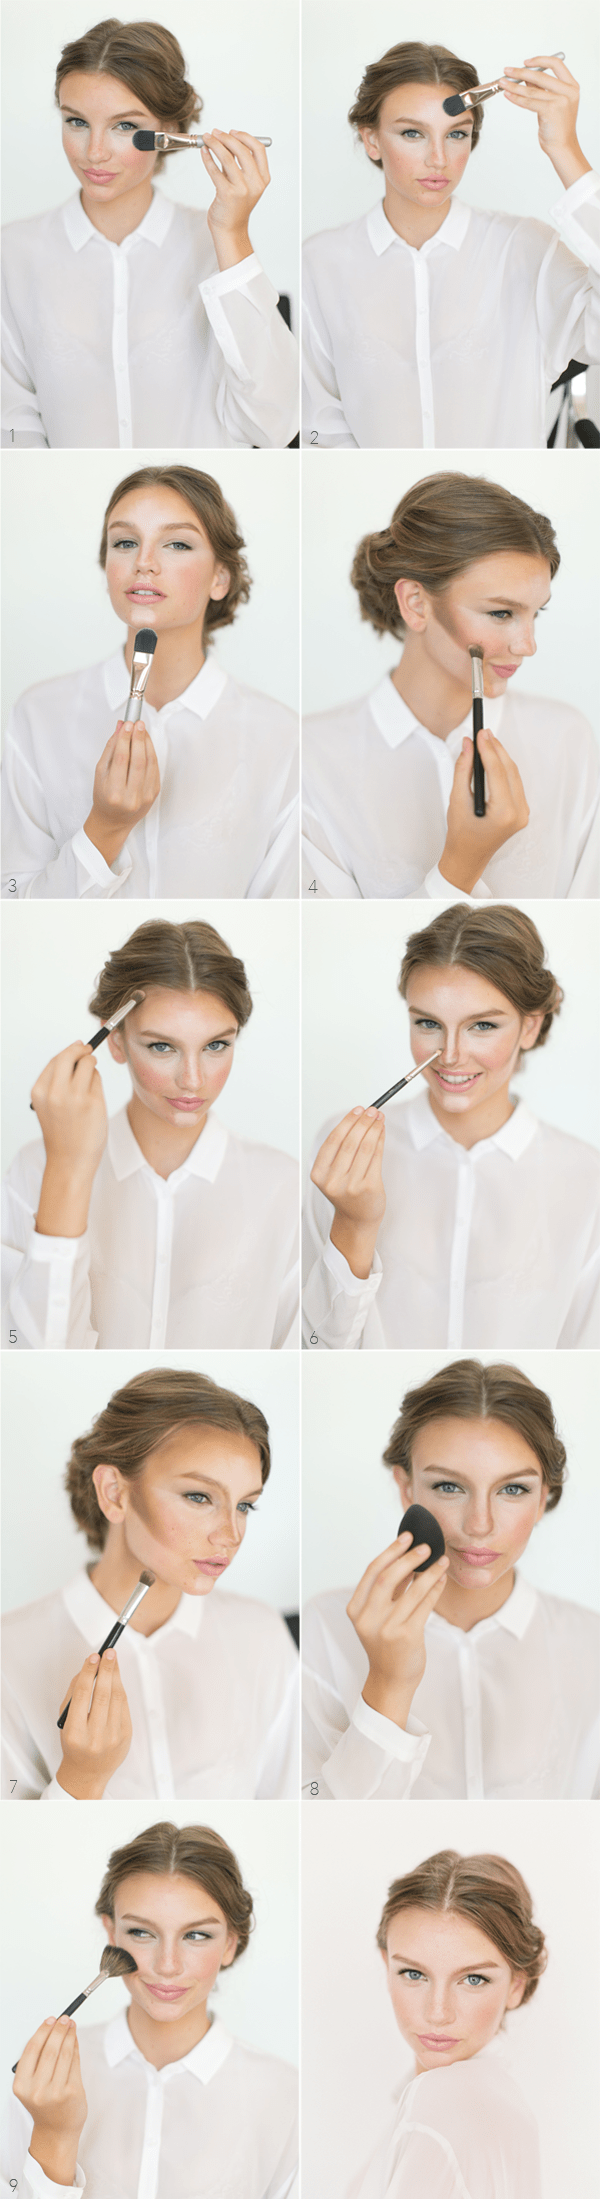 How To Contour And Highlight Your Wedding Make-Up